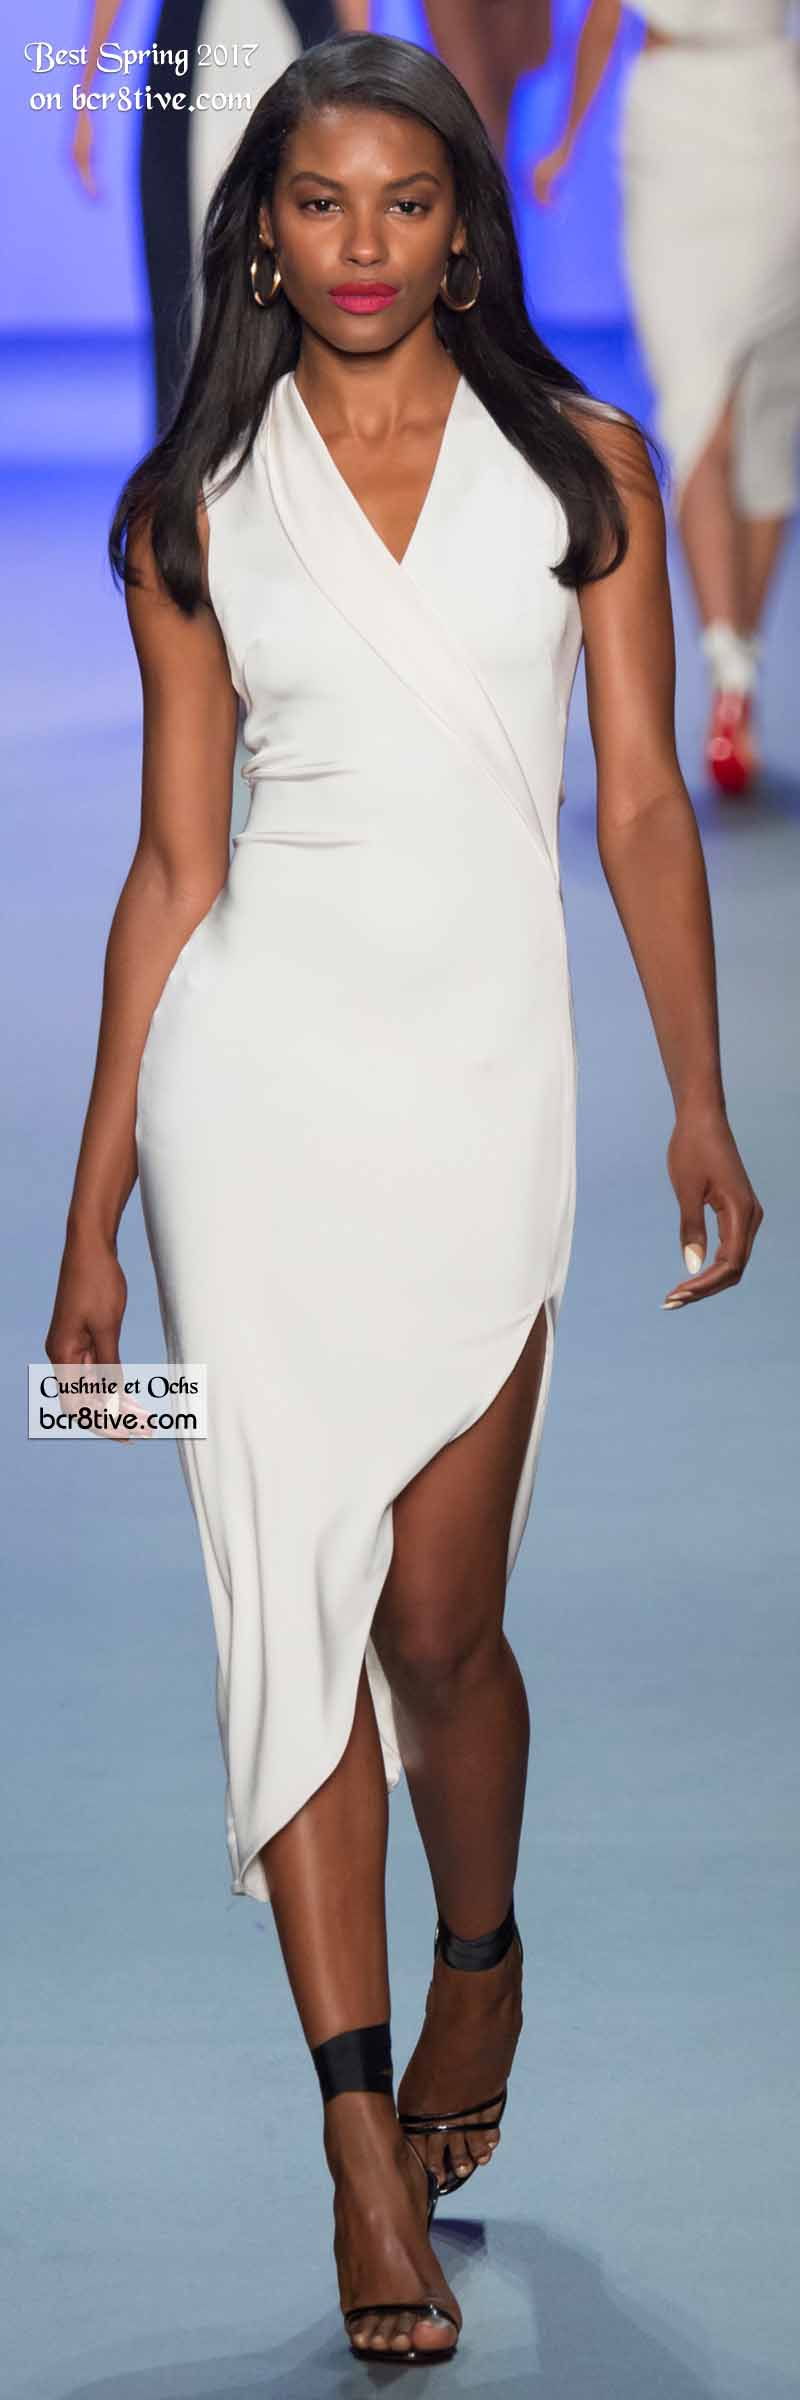 Cushnie et Ochs - The Best Looks from New York Fashion Week Spring 2017